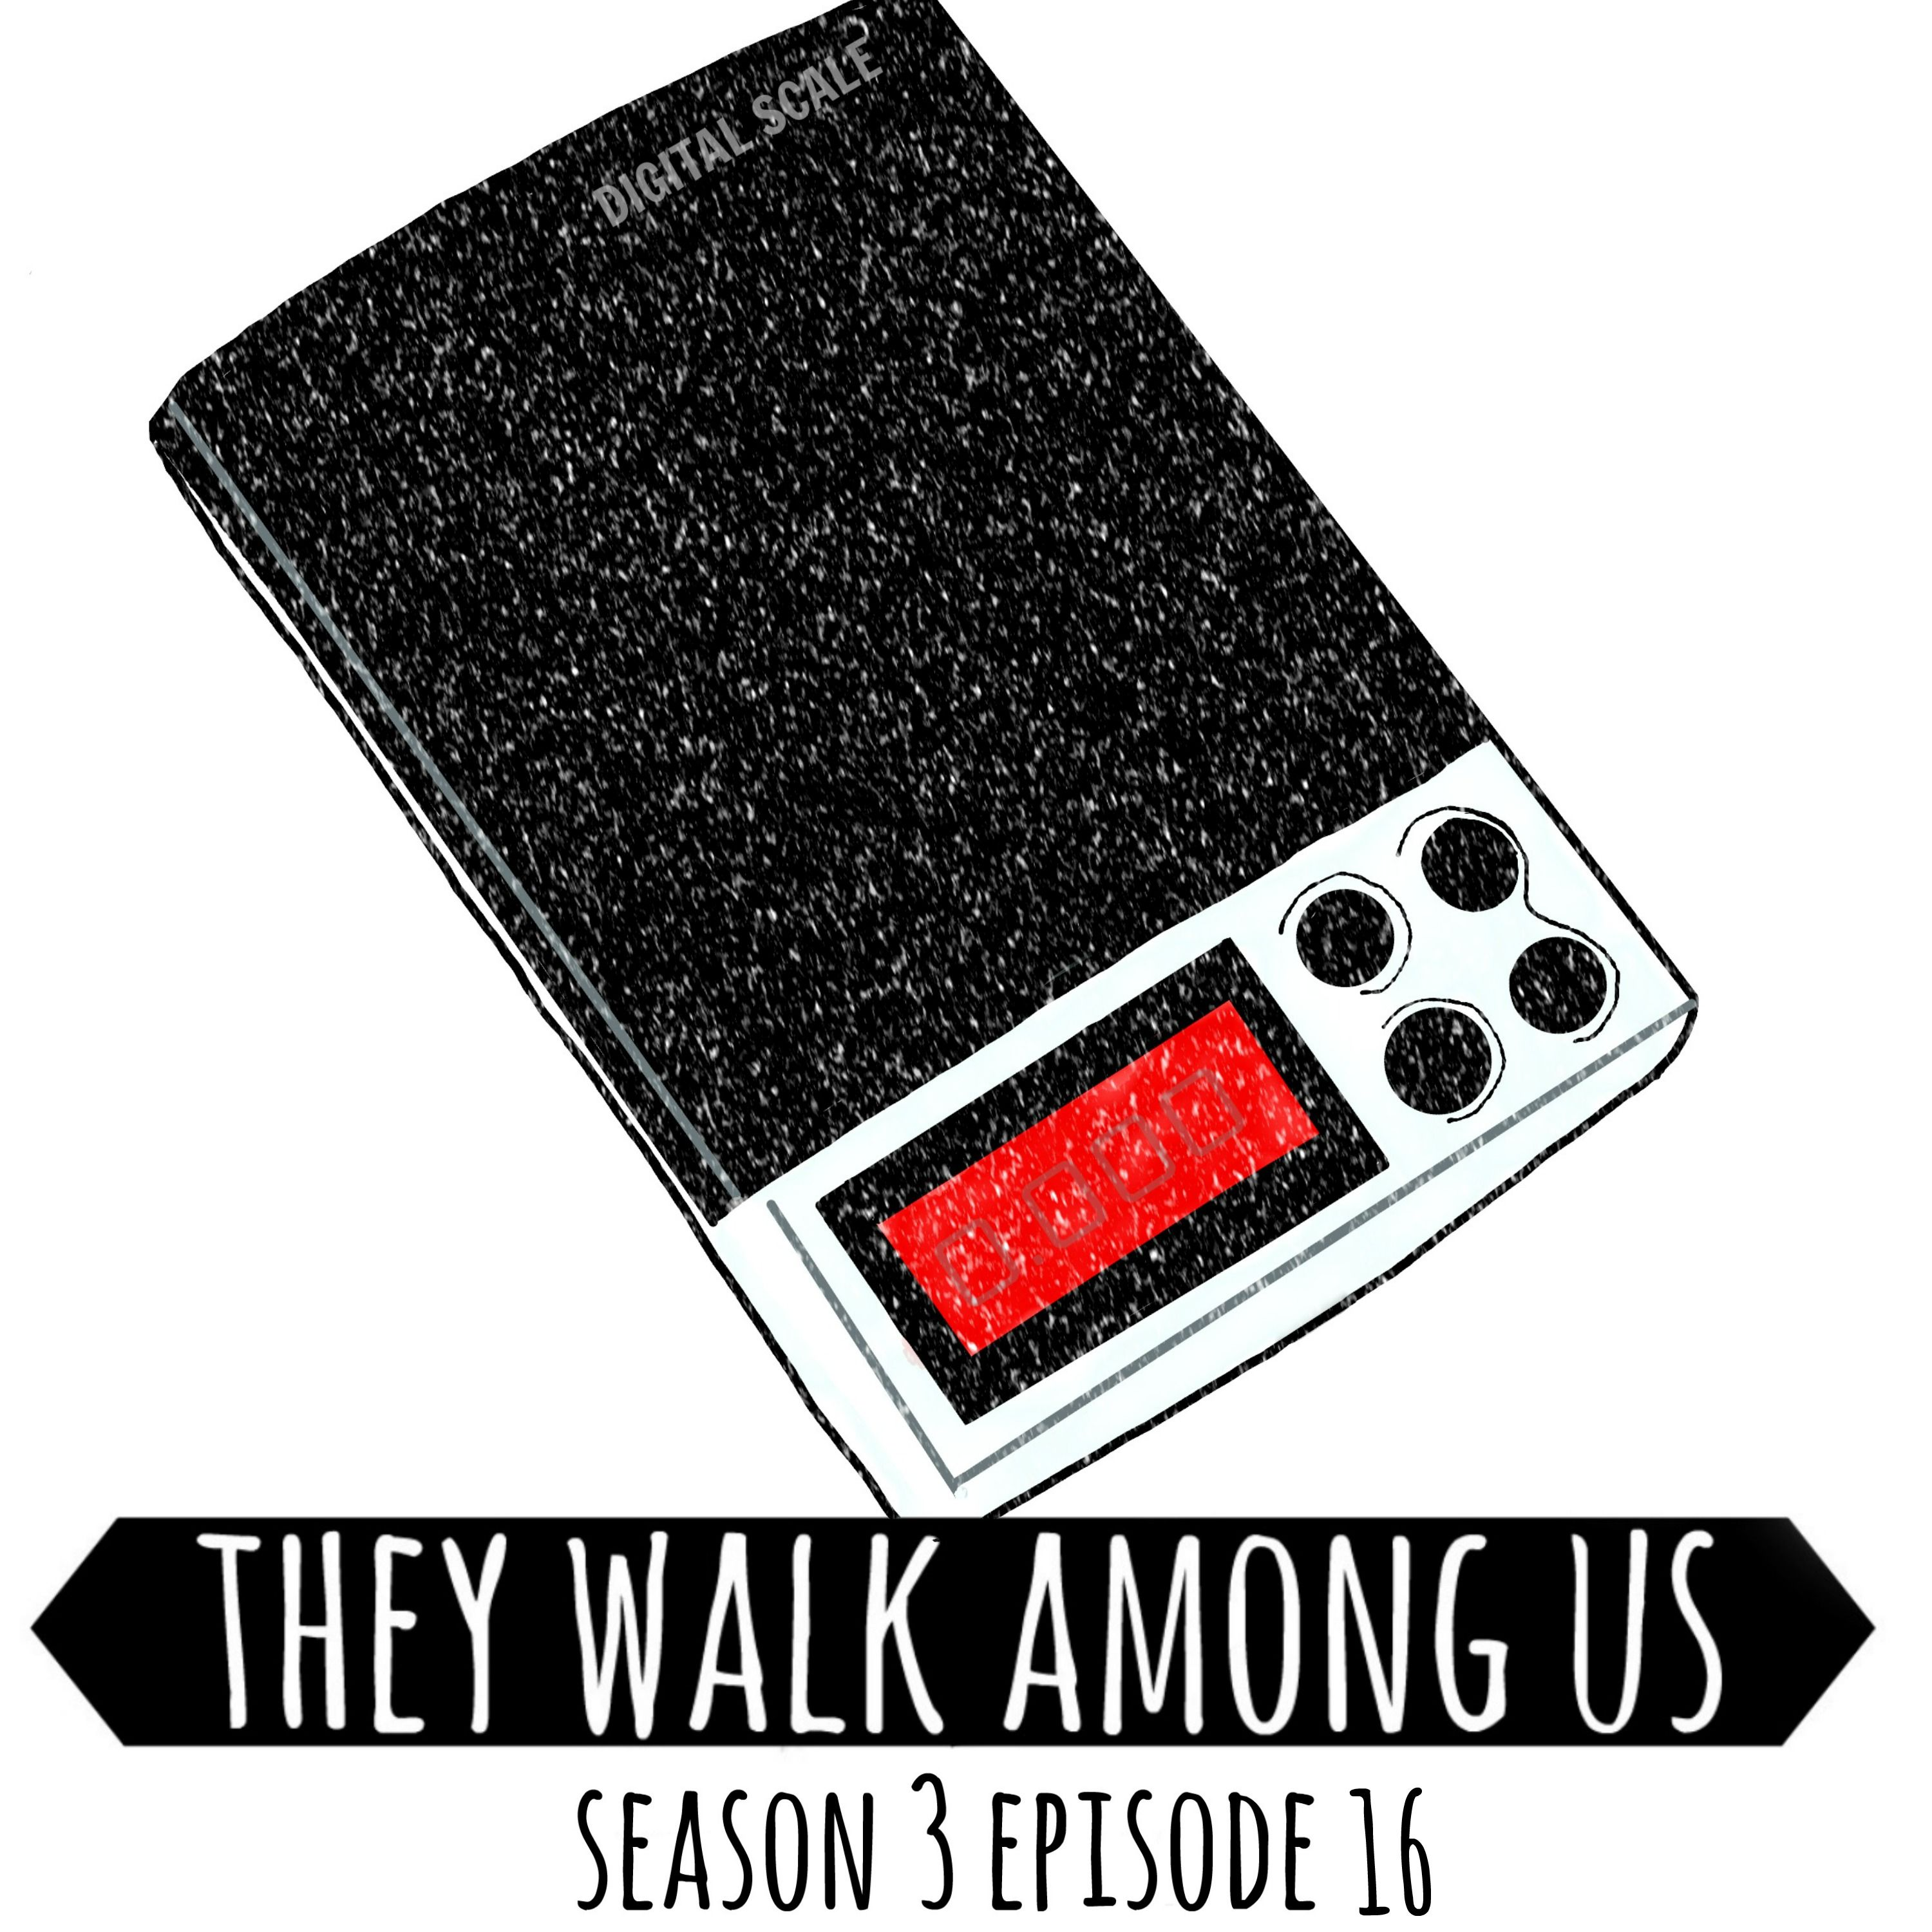 Season 3 - Episode 16